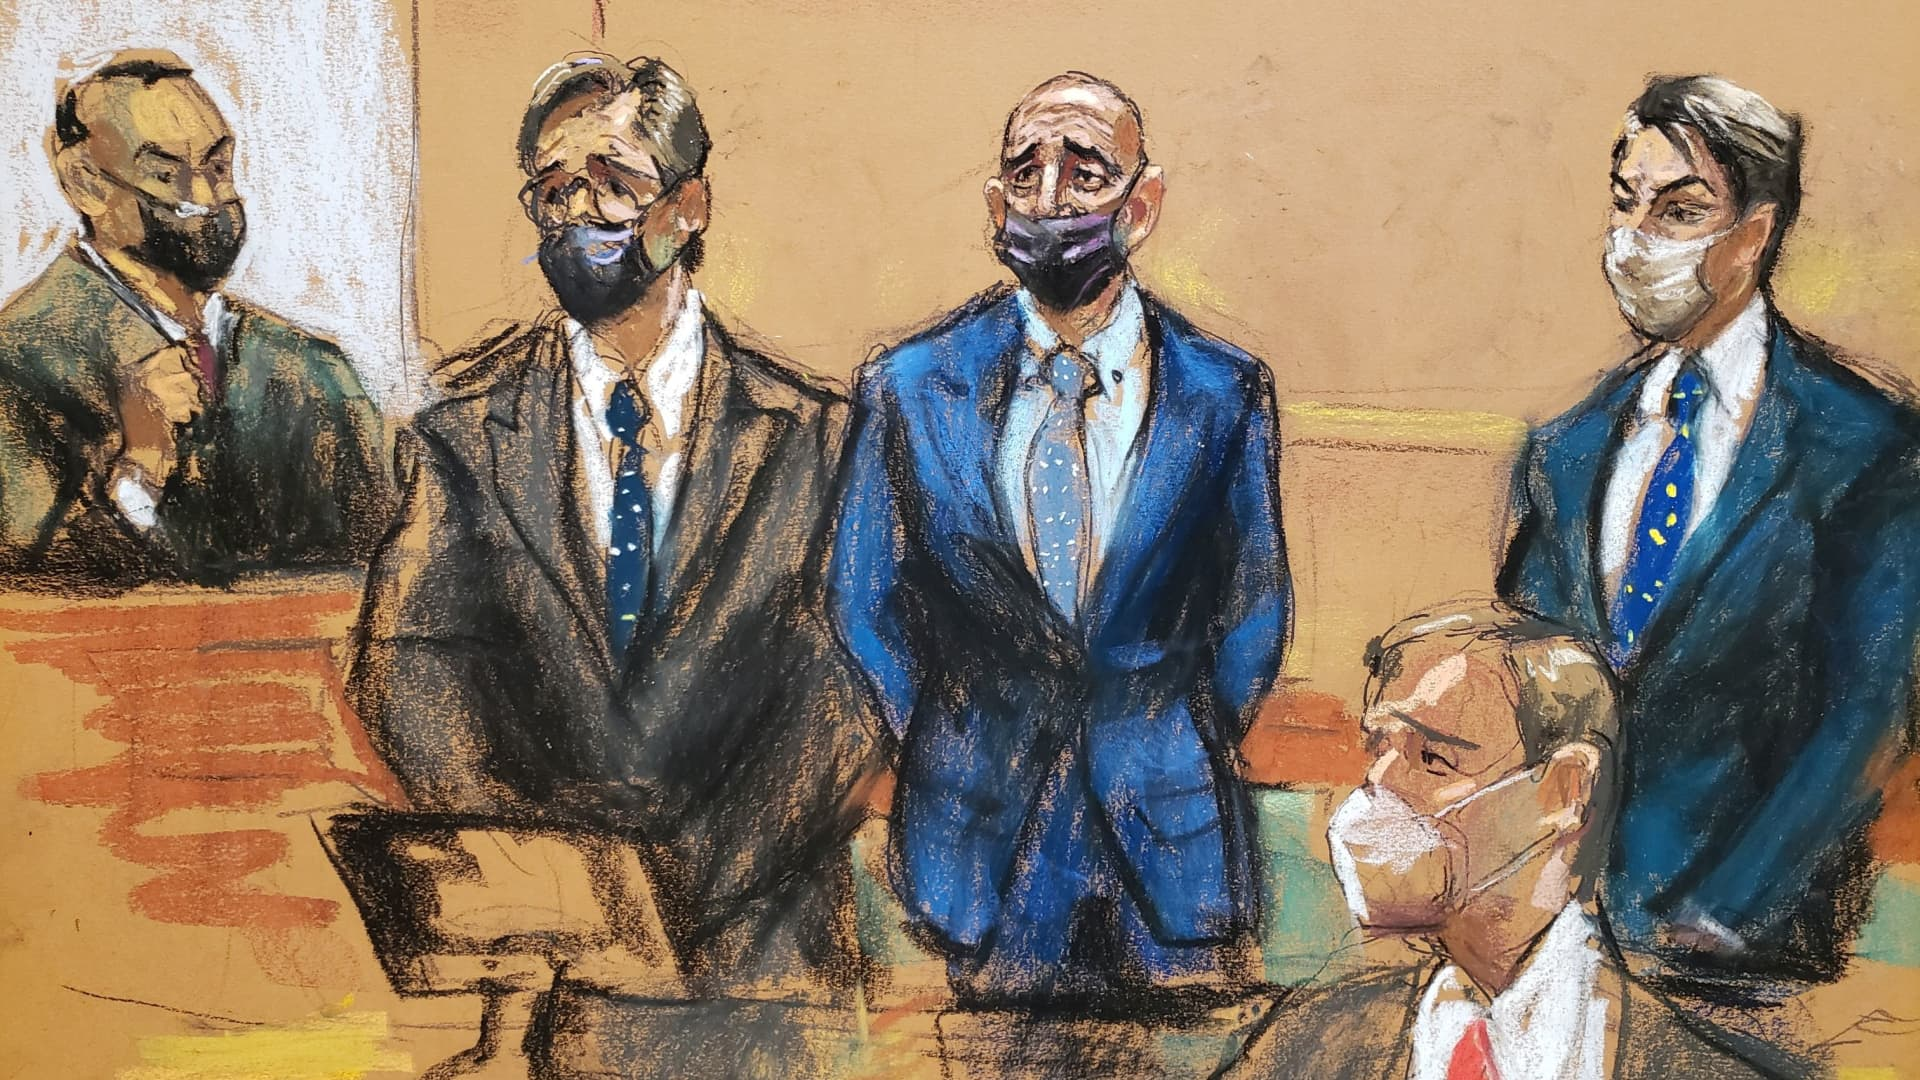 Thomas Barrack, a billionaire friend of Donald Trump who chaired the former president's inaugural fund, stands beside his co-defendant and former employee Matthew Grimes and his lawyer Matt Herrington during their arraignment hearing at the Brooklyn Federal Courthouse in Brooklyn, New York, U.S., July 26, 2021 in this courtroom sketch.